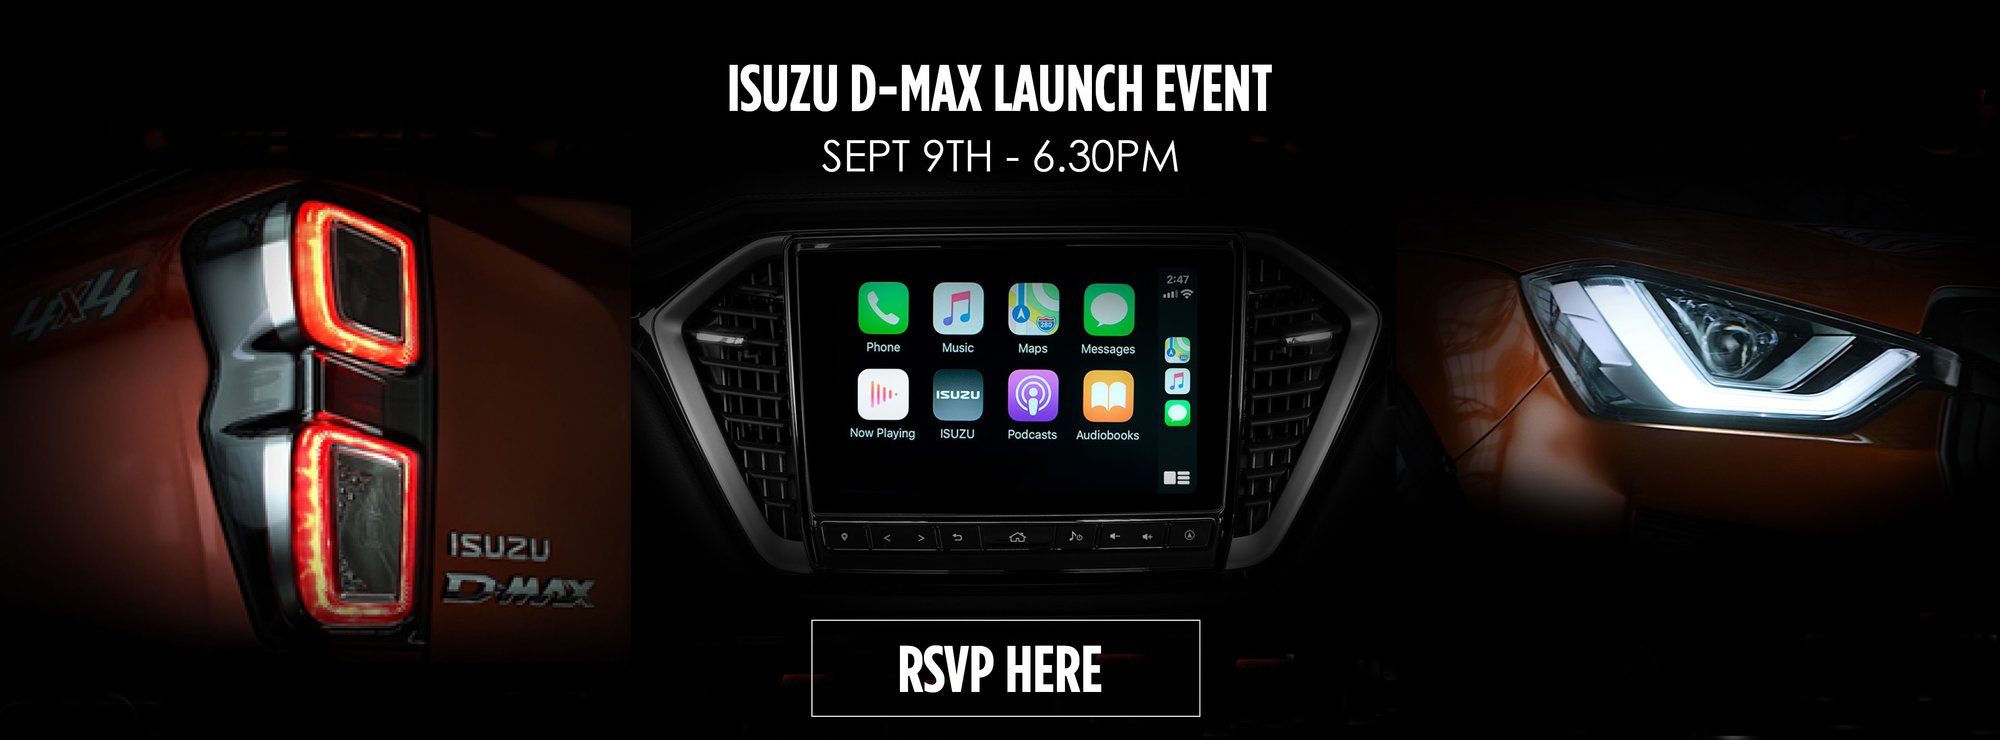 Dmax Launch Event